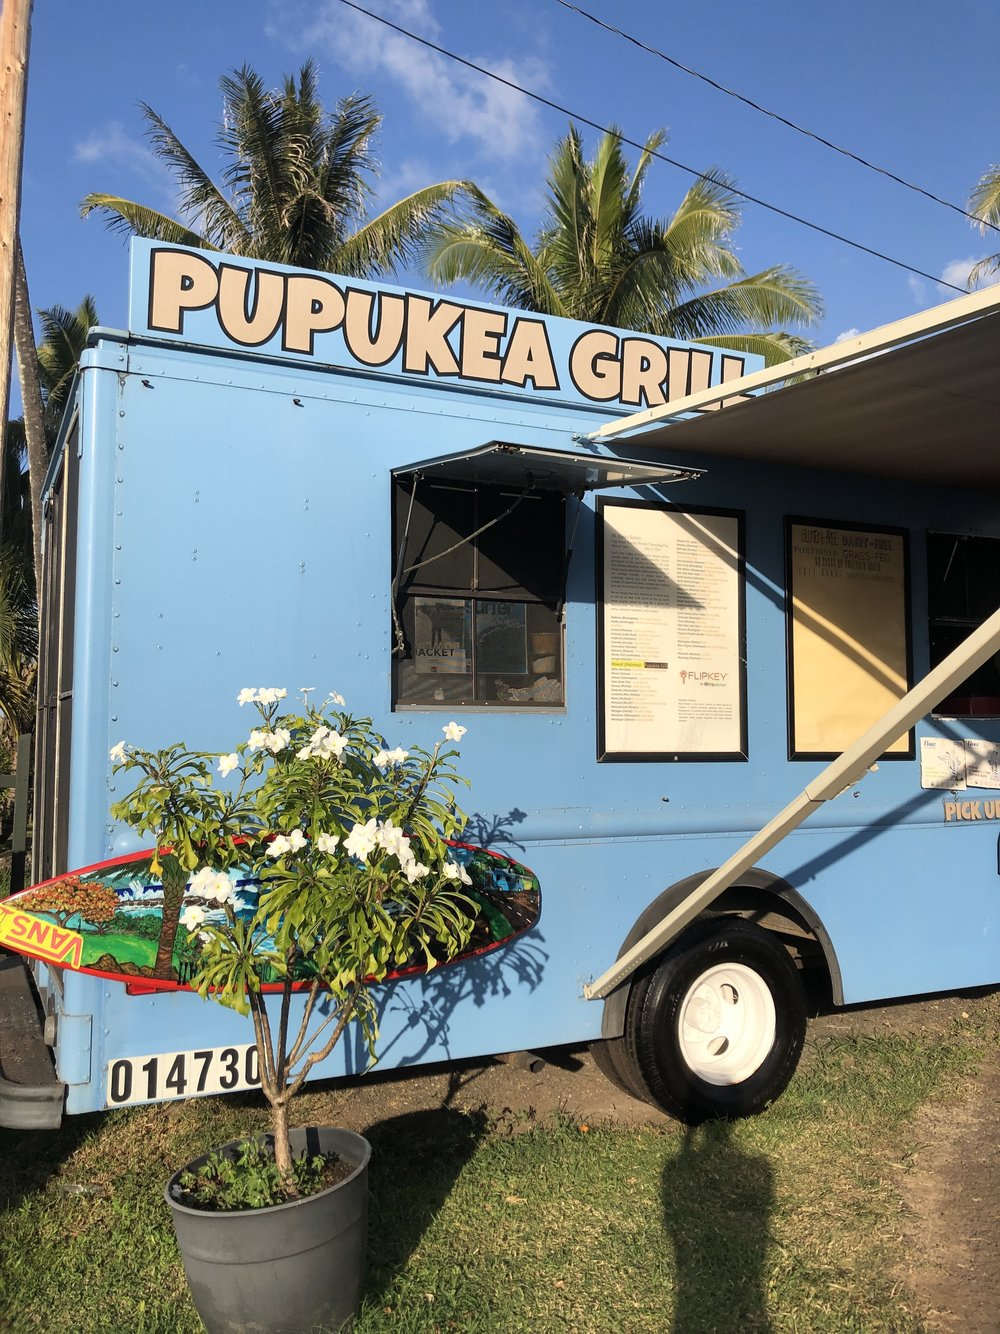 Pupukea Grill Food Truck in North Shore, Hawaii